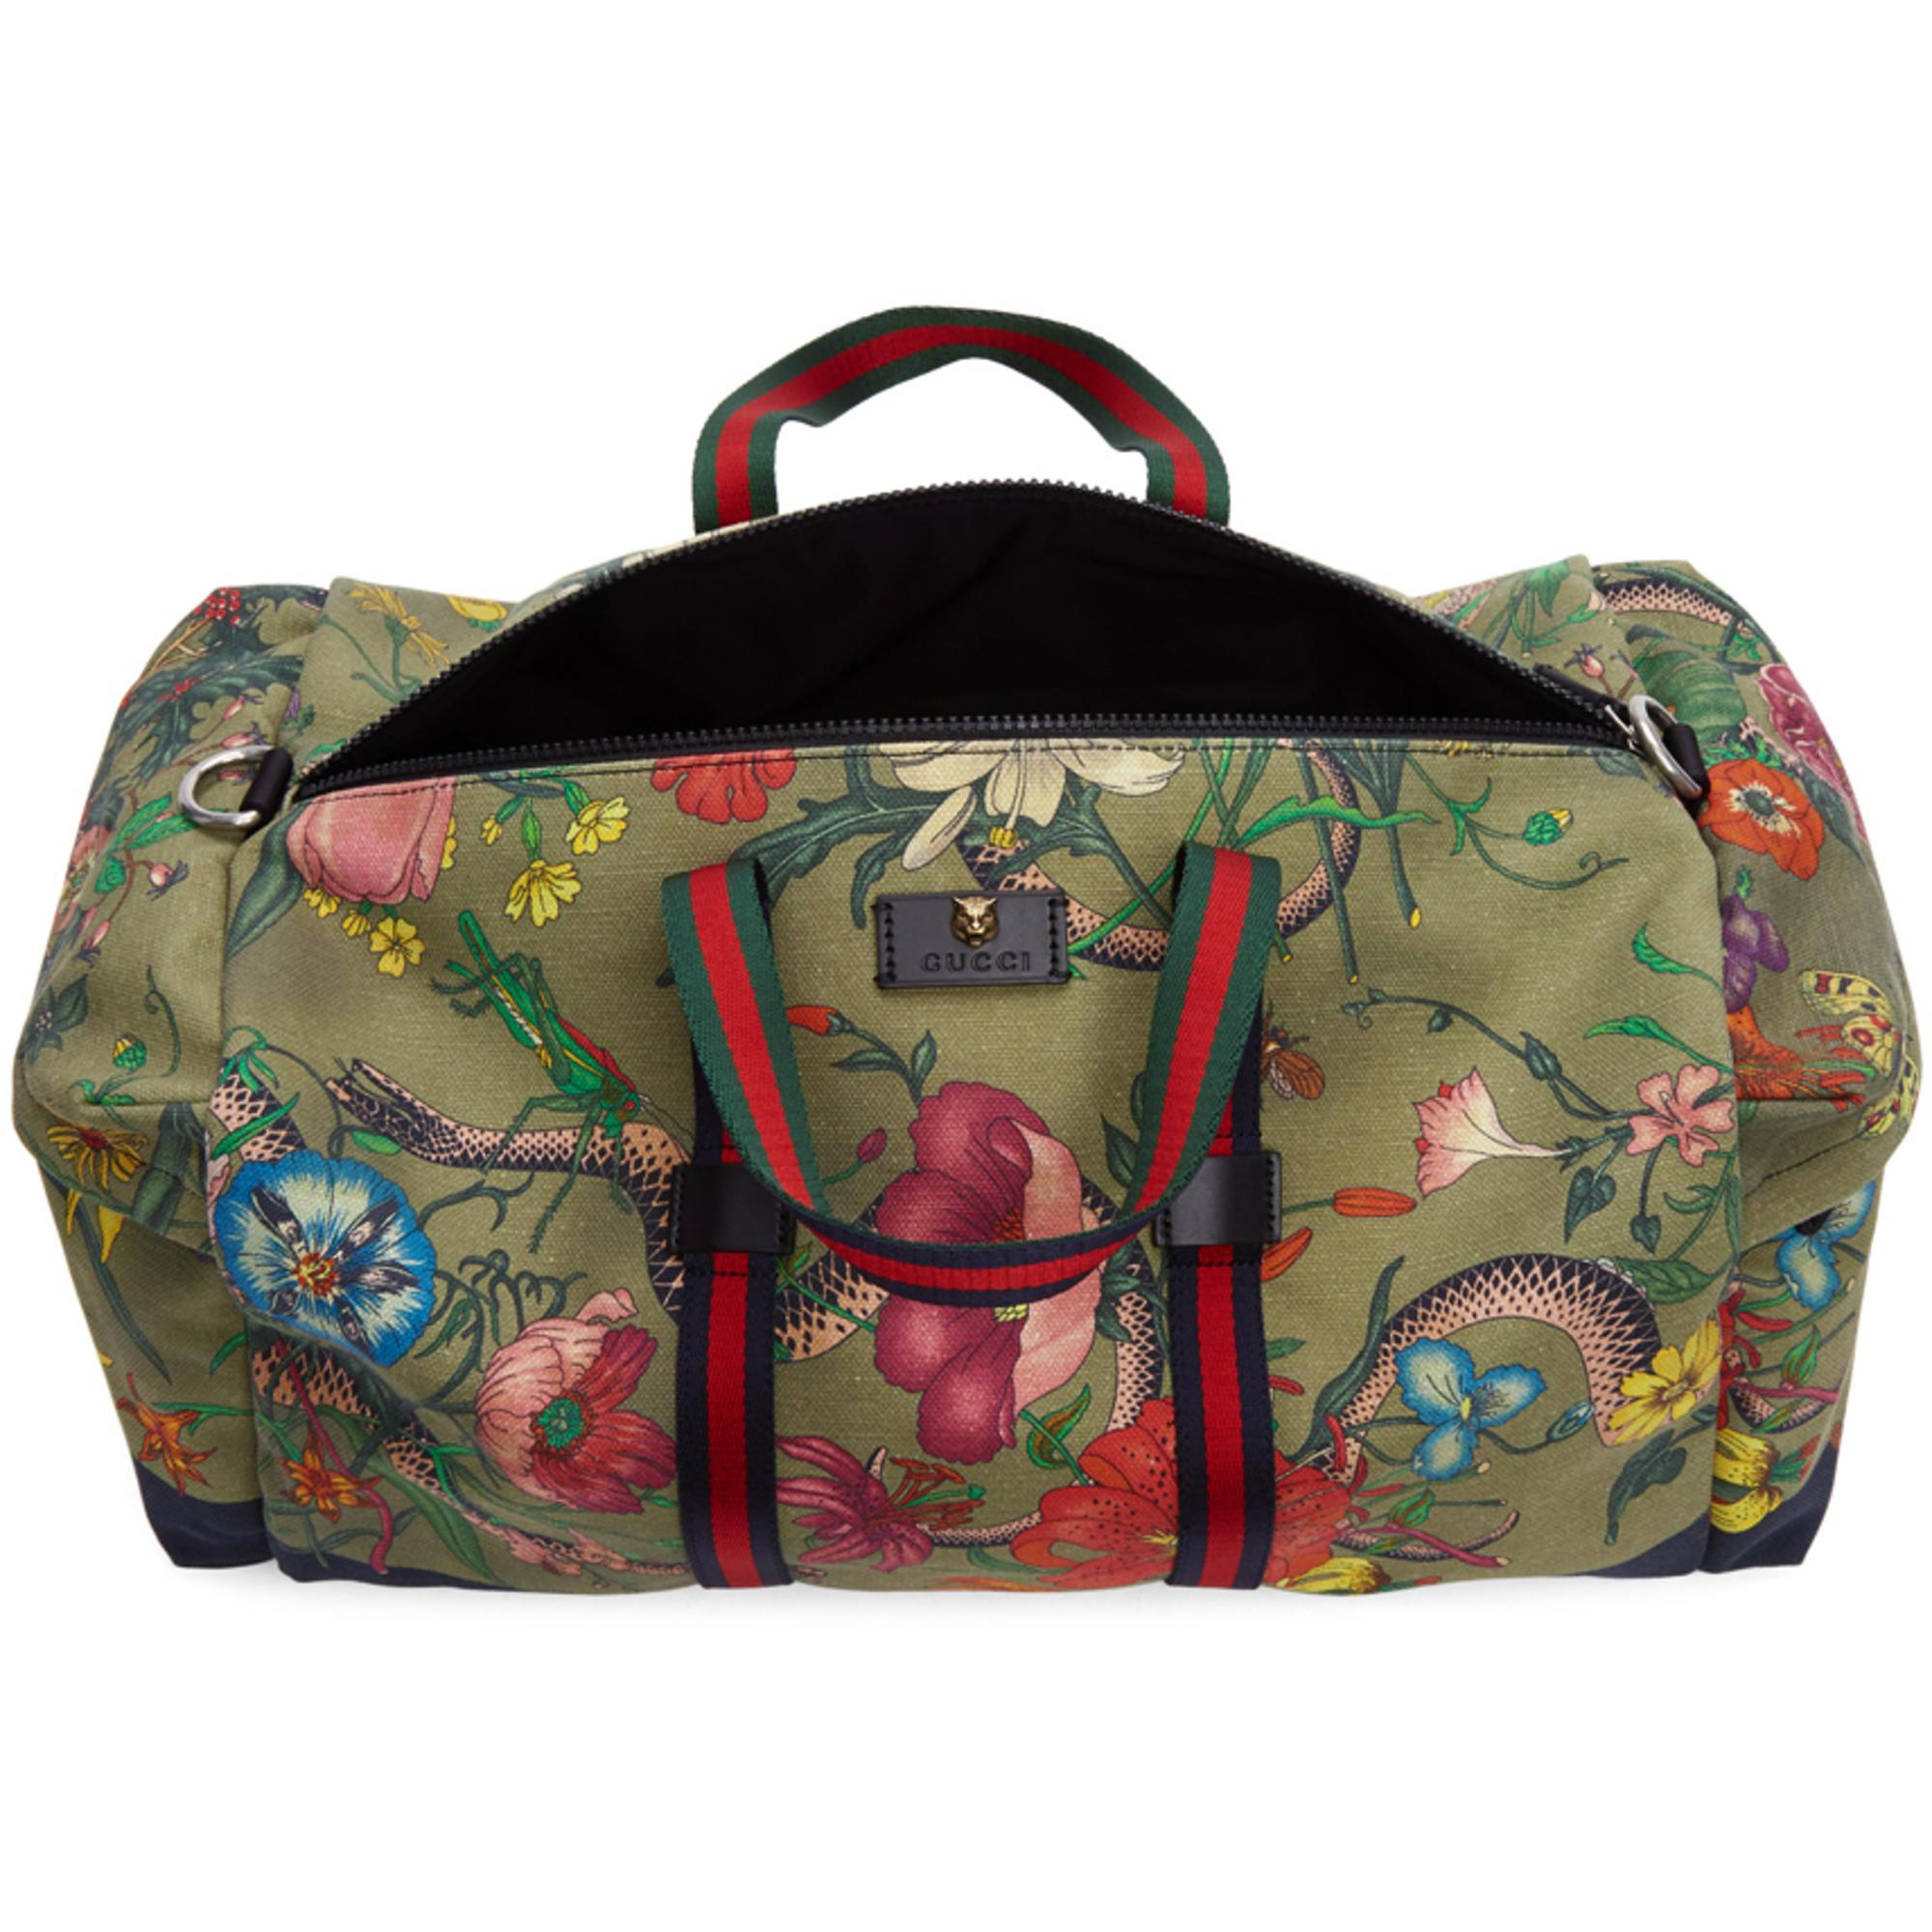 9c1bd7b6ad8 Lyst - Gucci Green Canvas Flora Snake Duffle Bag in Green for Men